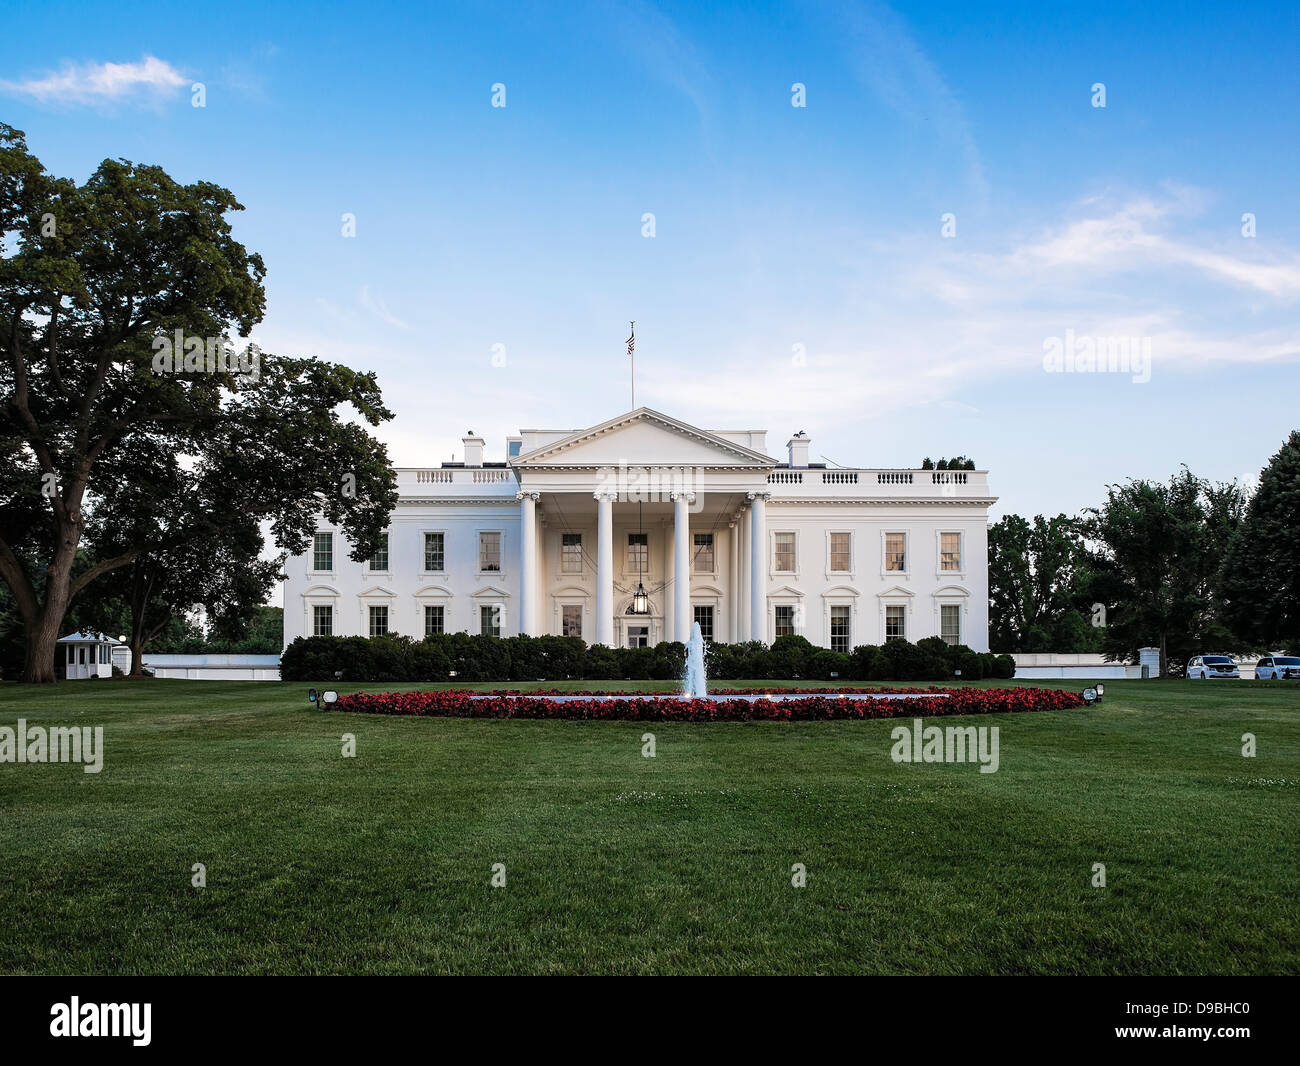 The White House, home of the United States President, Washington D.C., USA - Stock Image